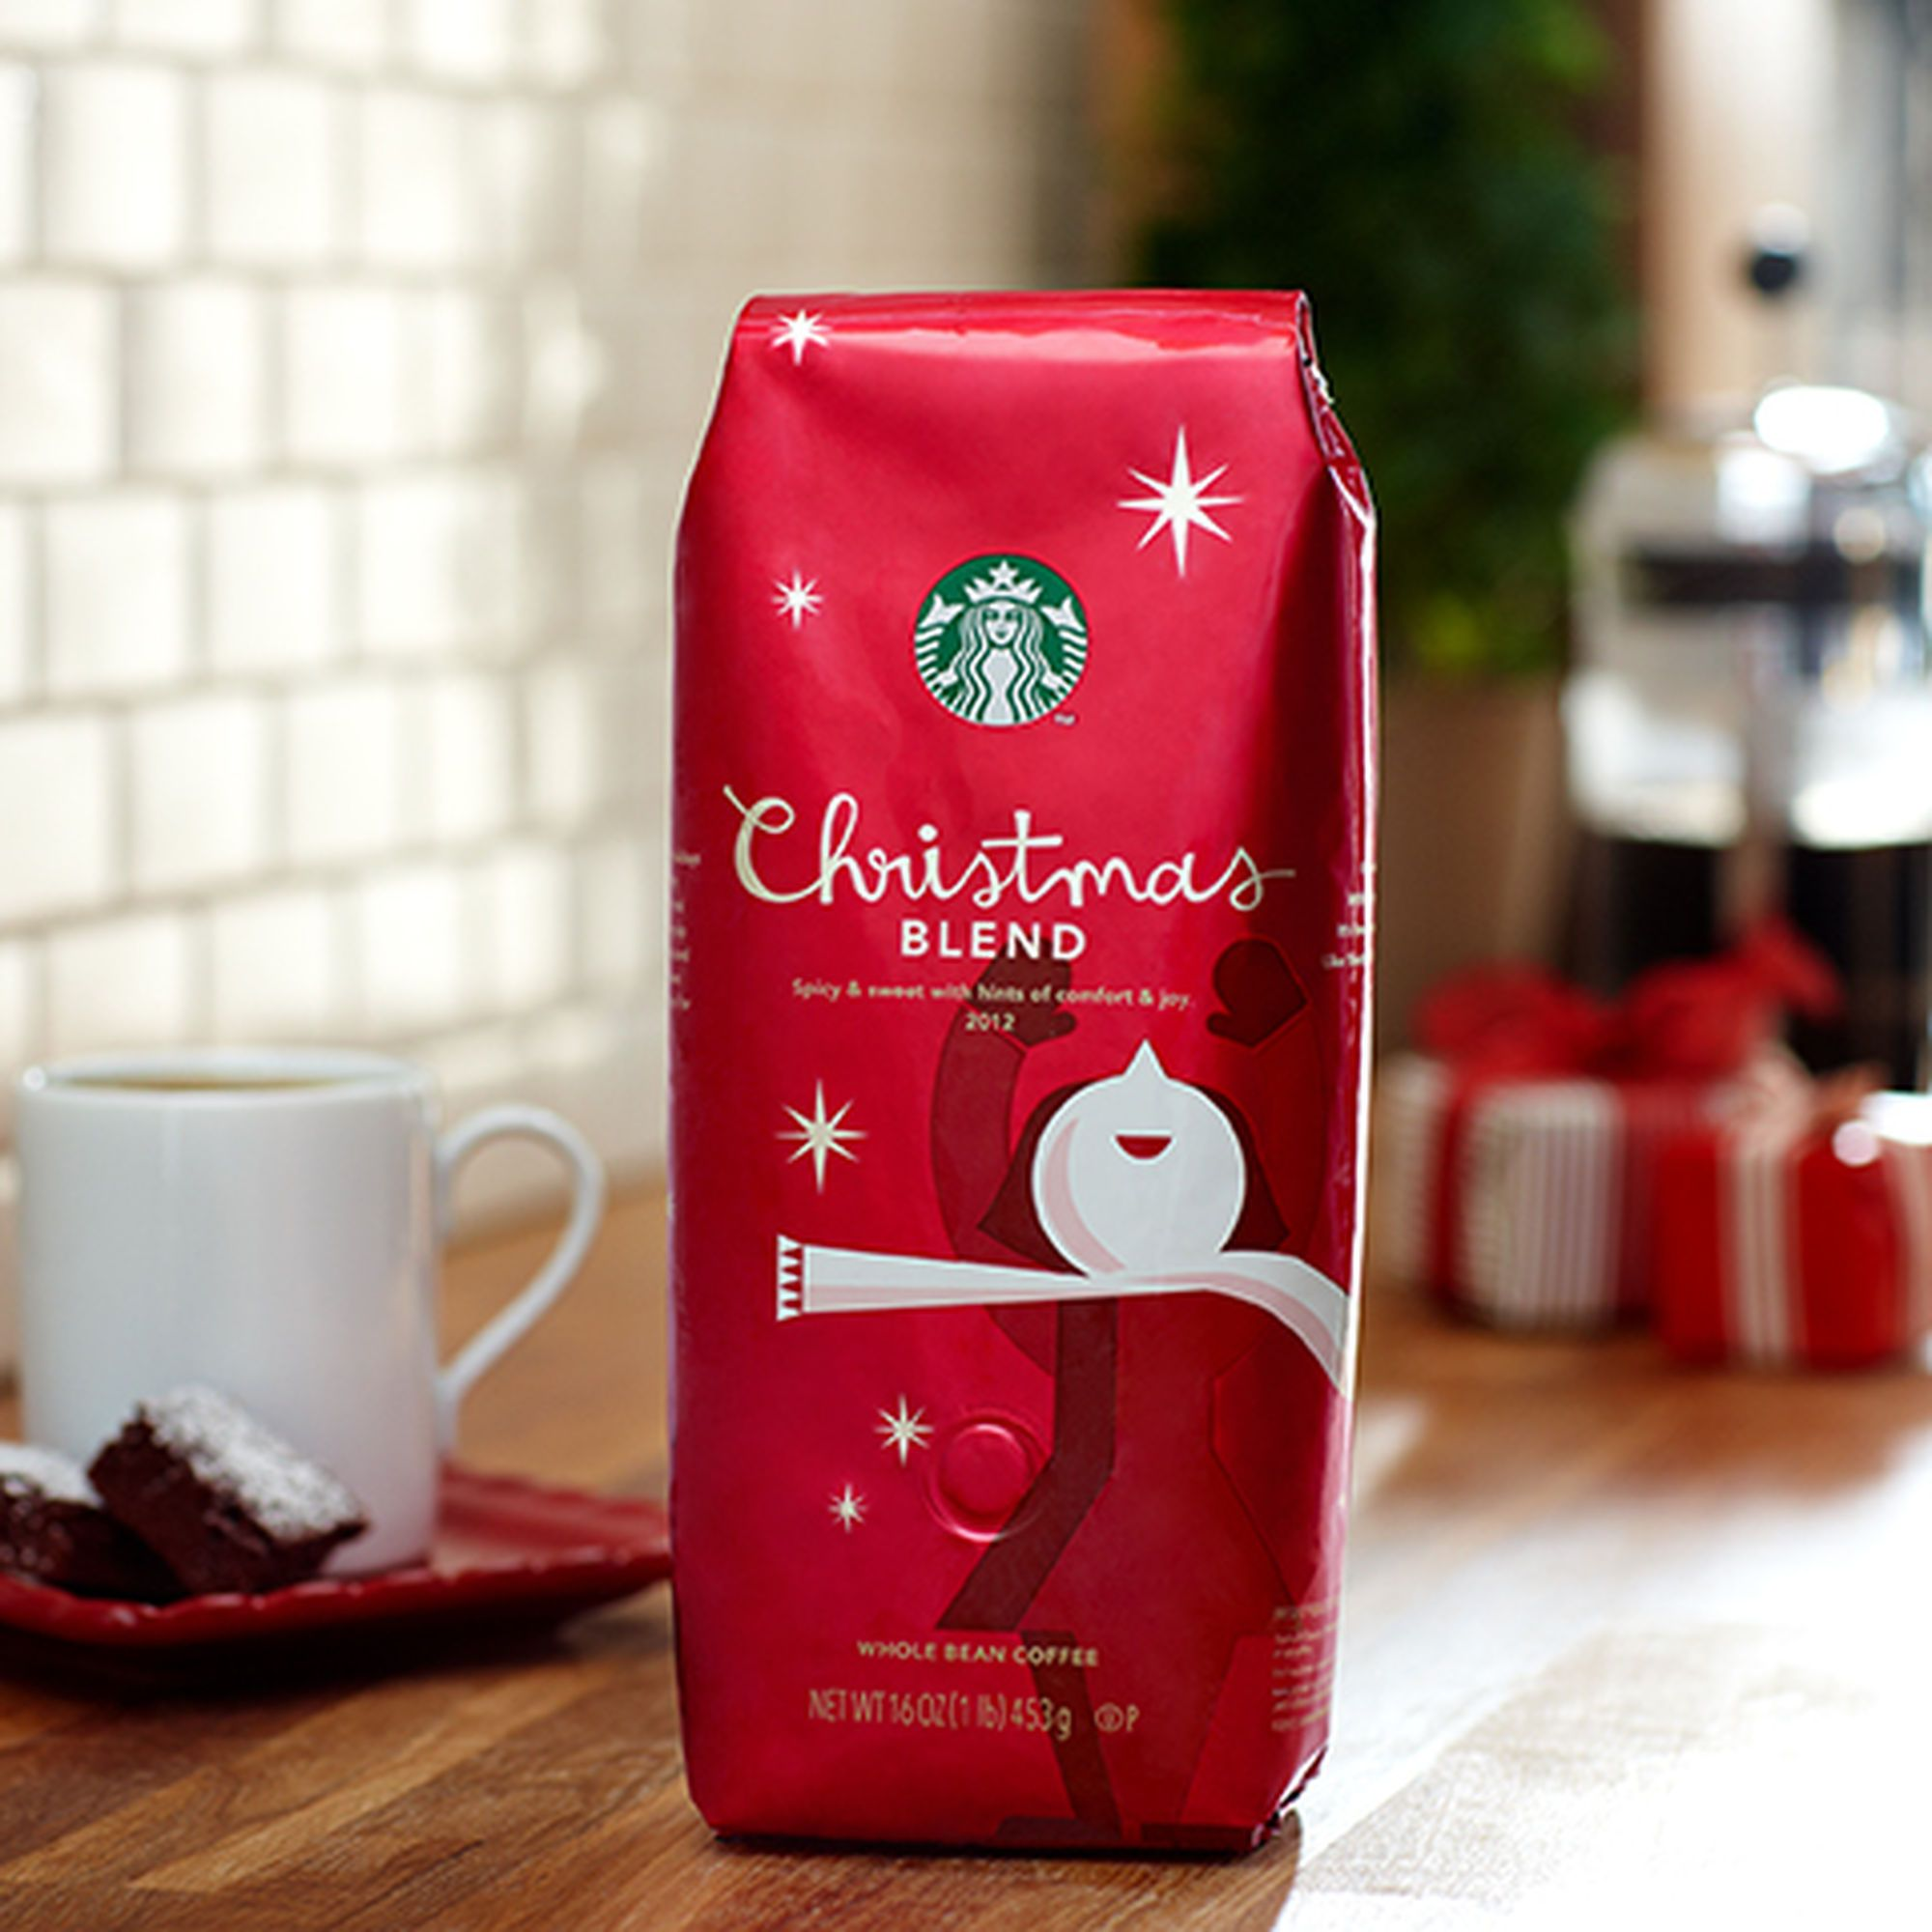 Starbucks® Christmas Blend is the best. I stock up every